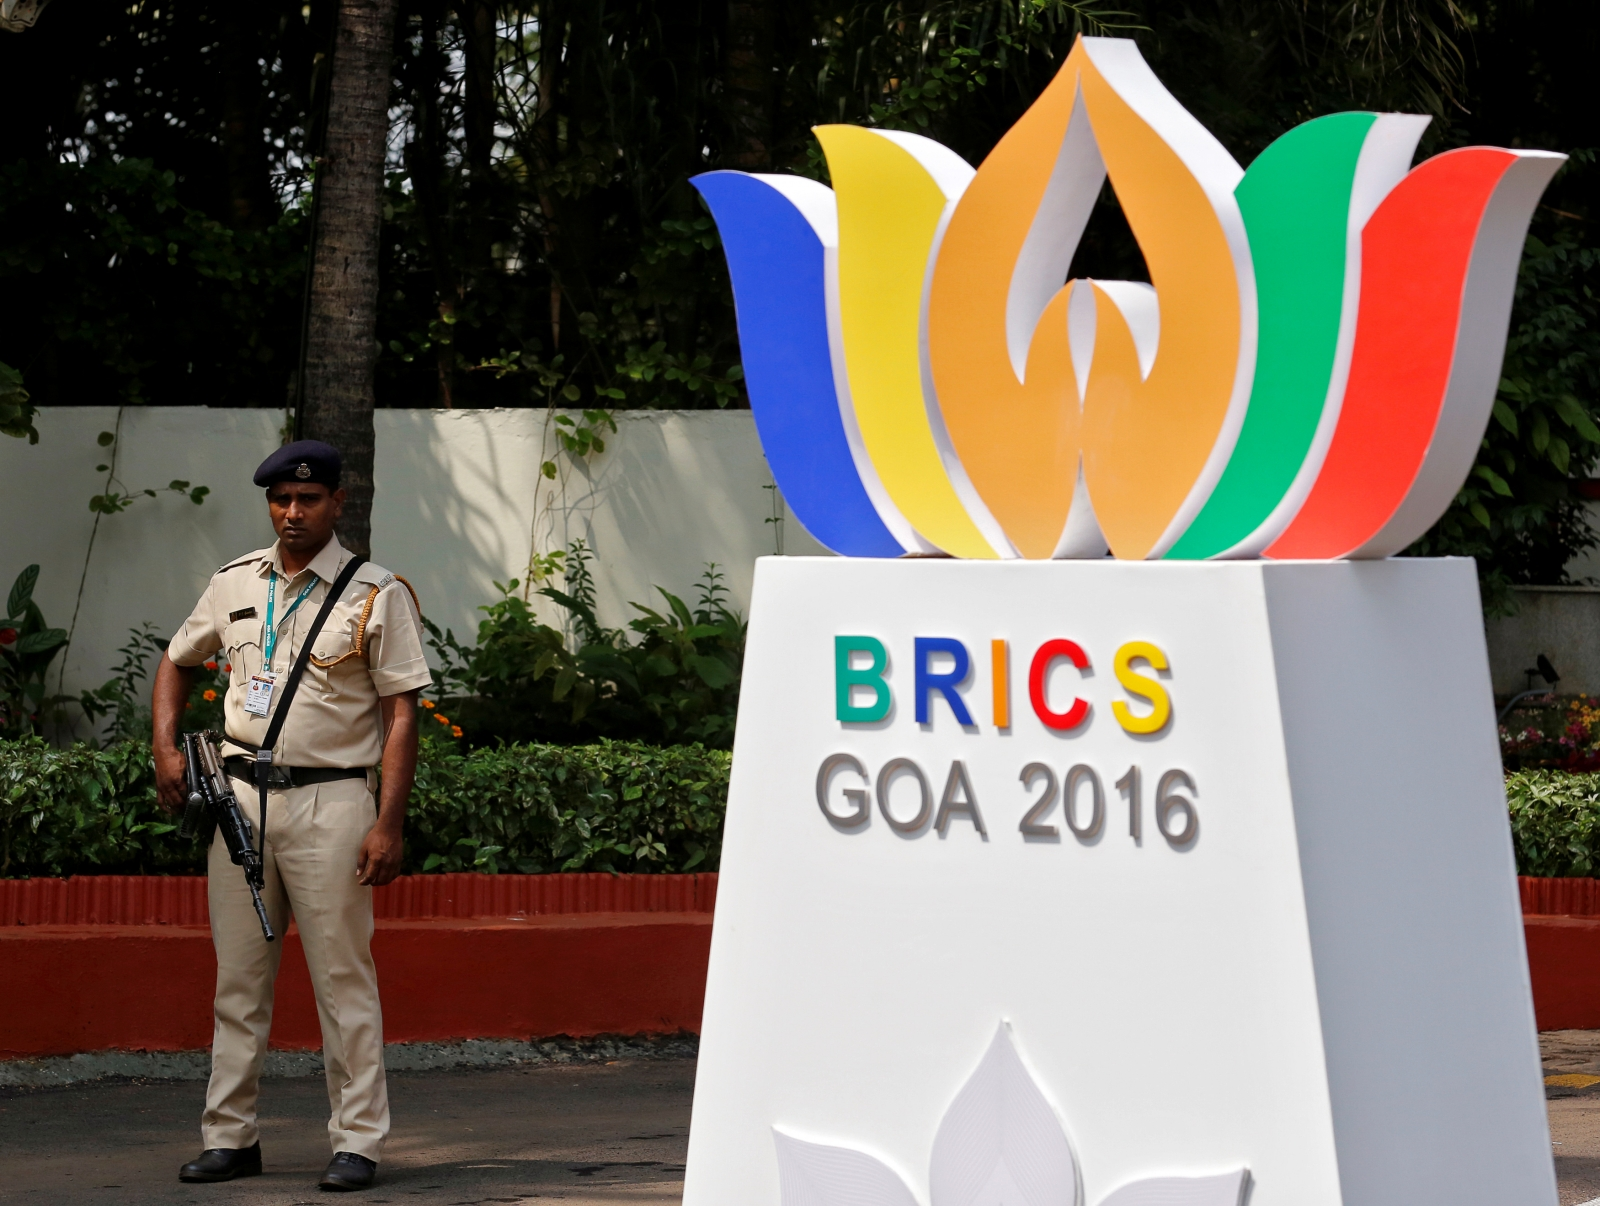 Brics Goa summit